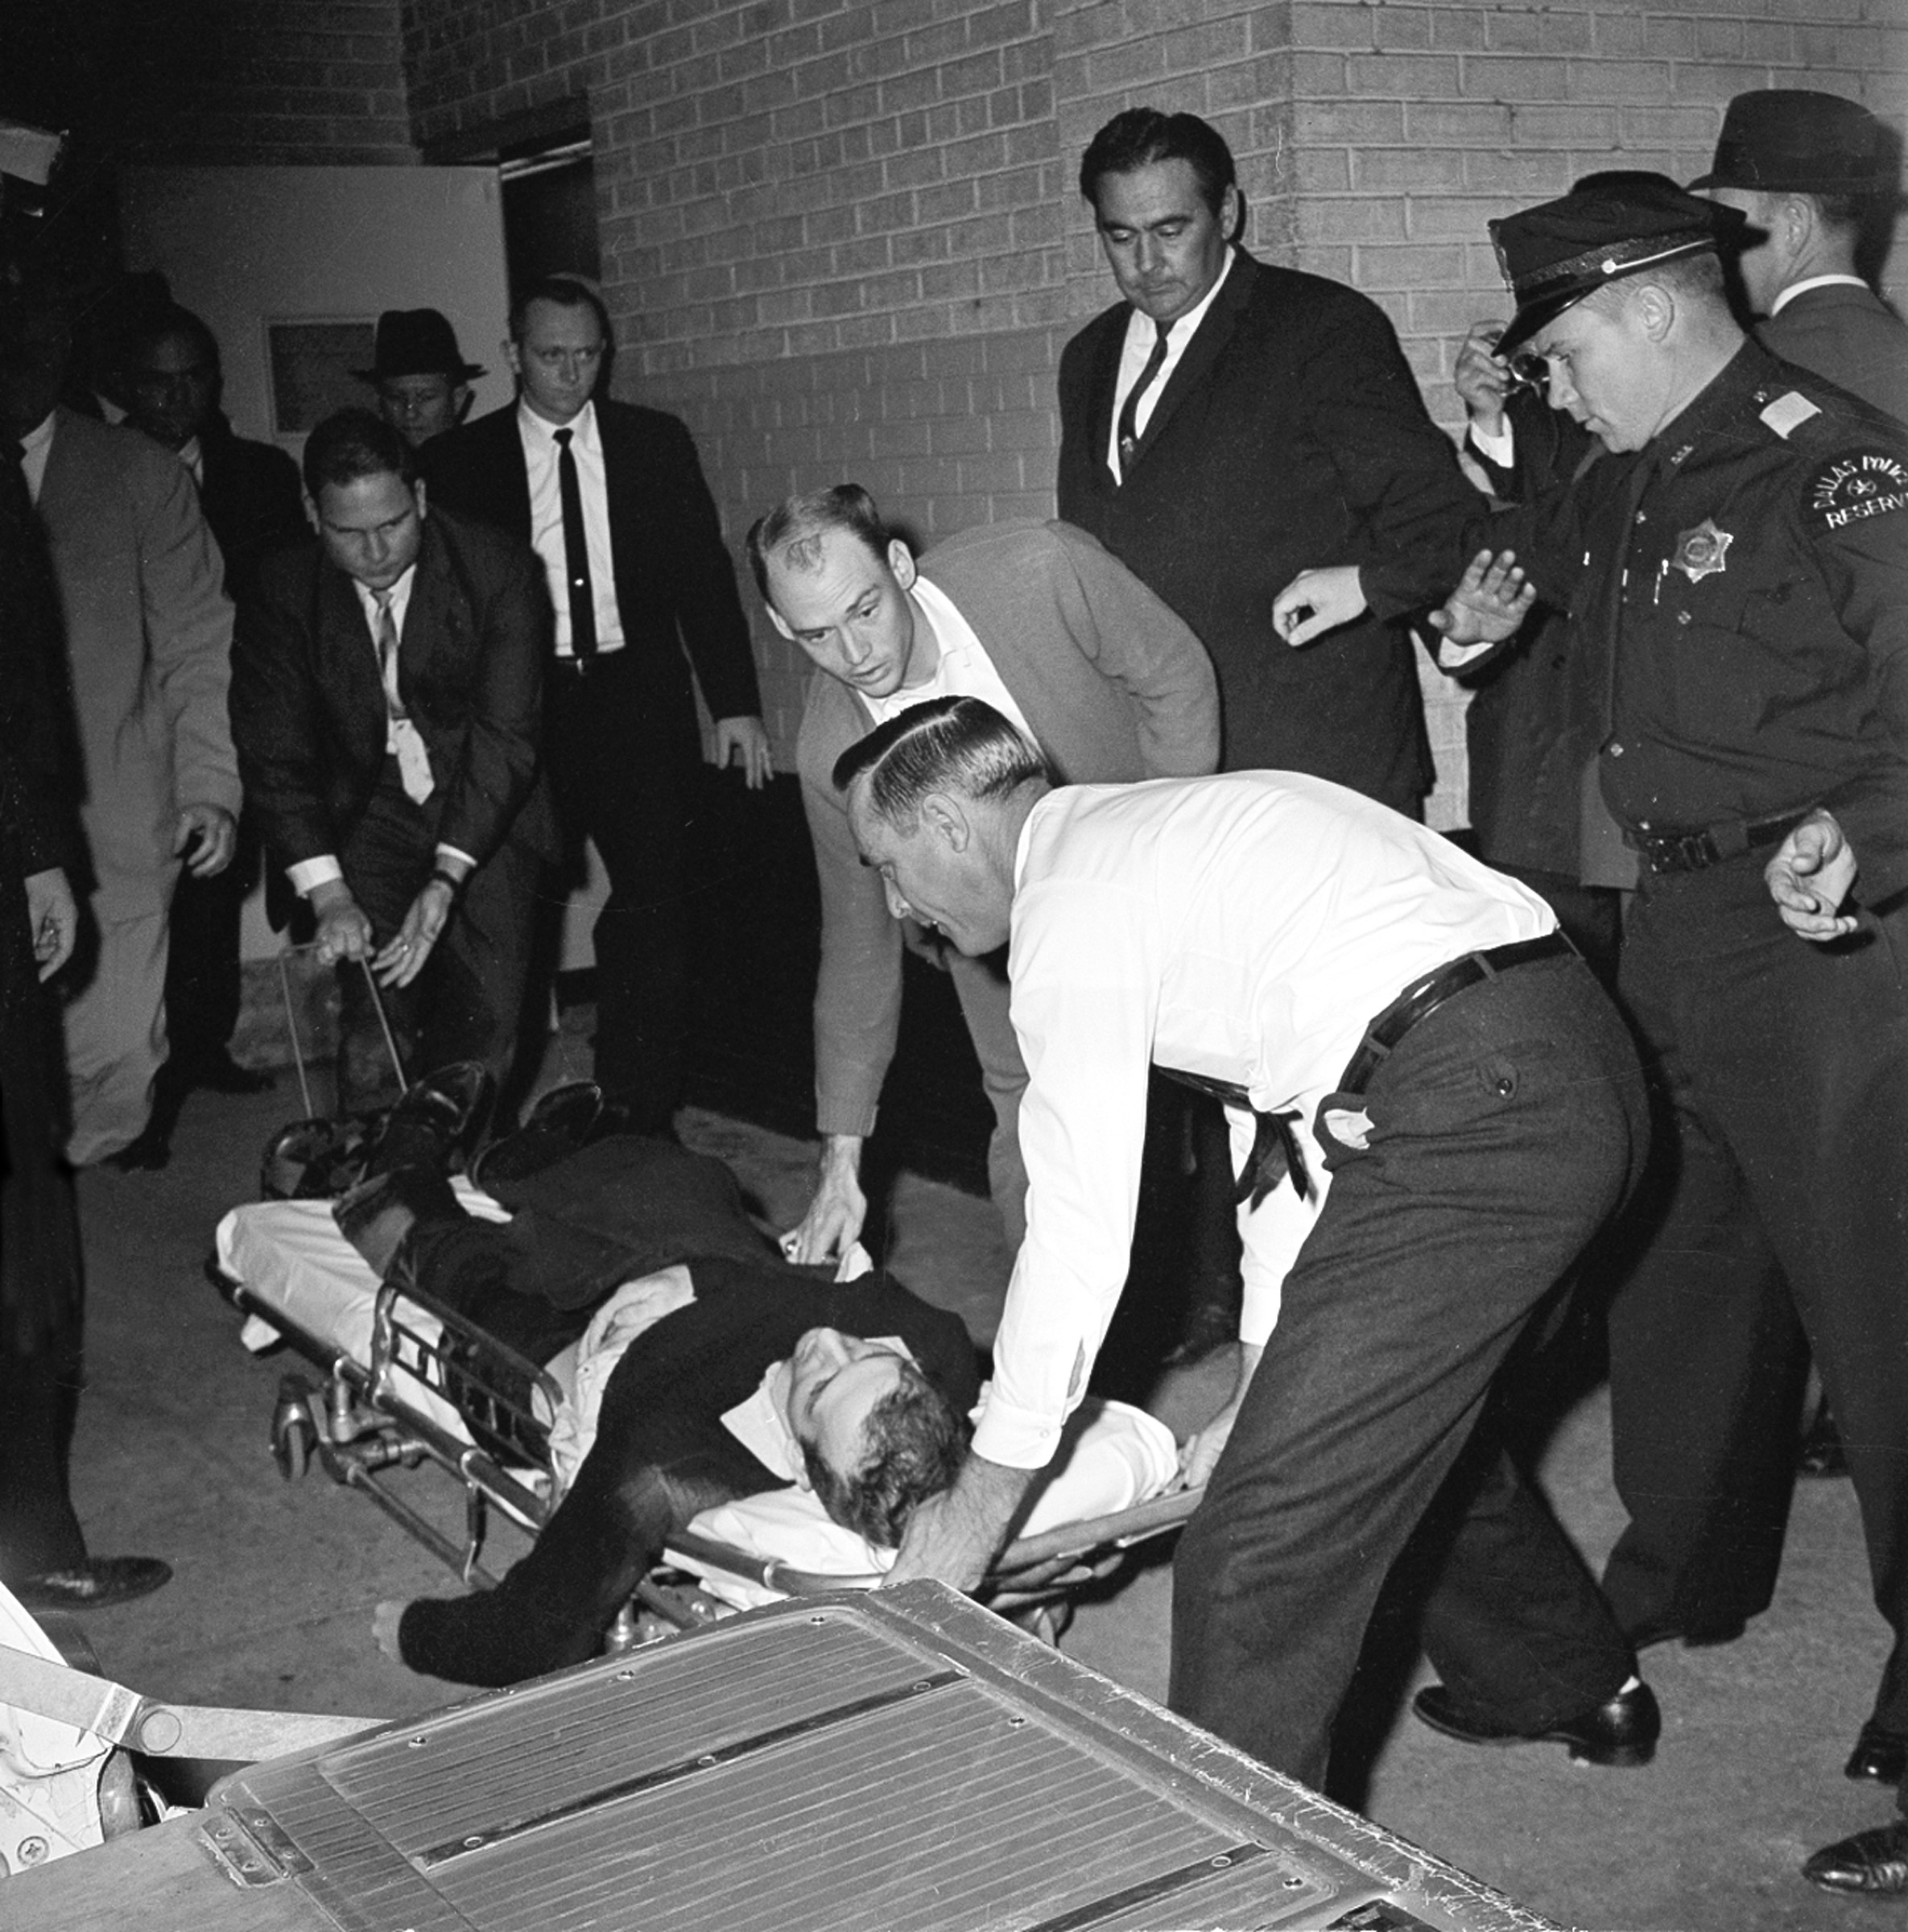 Lee Harvey Oswald, accused assassin of President John F. Kennedy, is placed on a stretcher after being shot in the stomach in Dallas, Texas, Nov. 24, 1963.